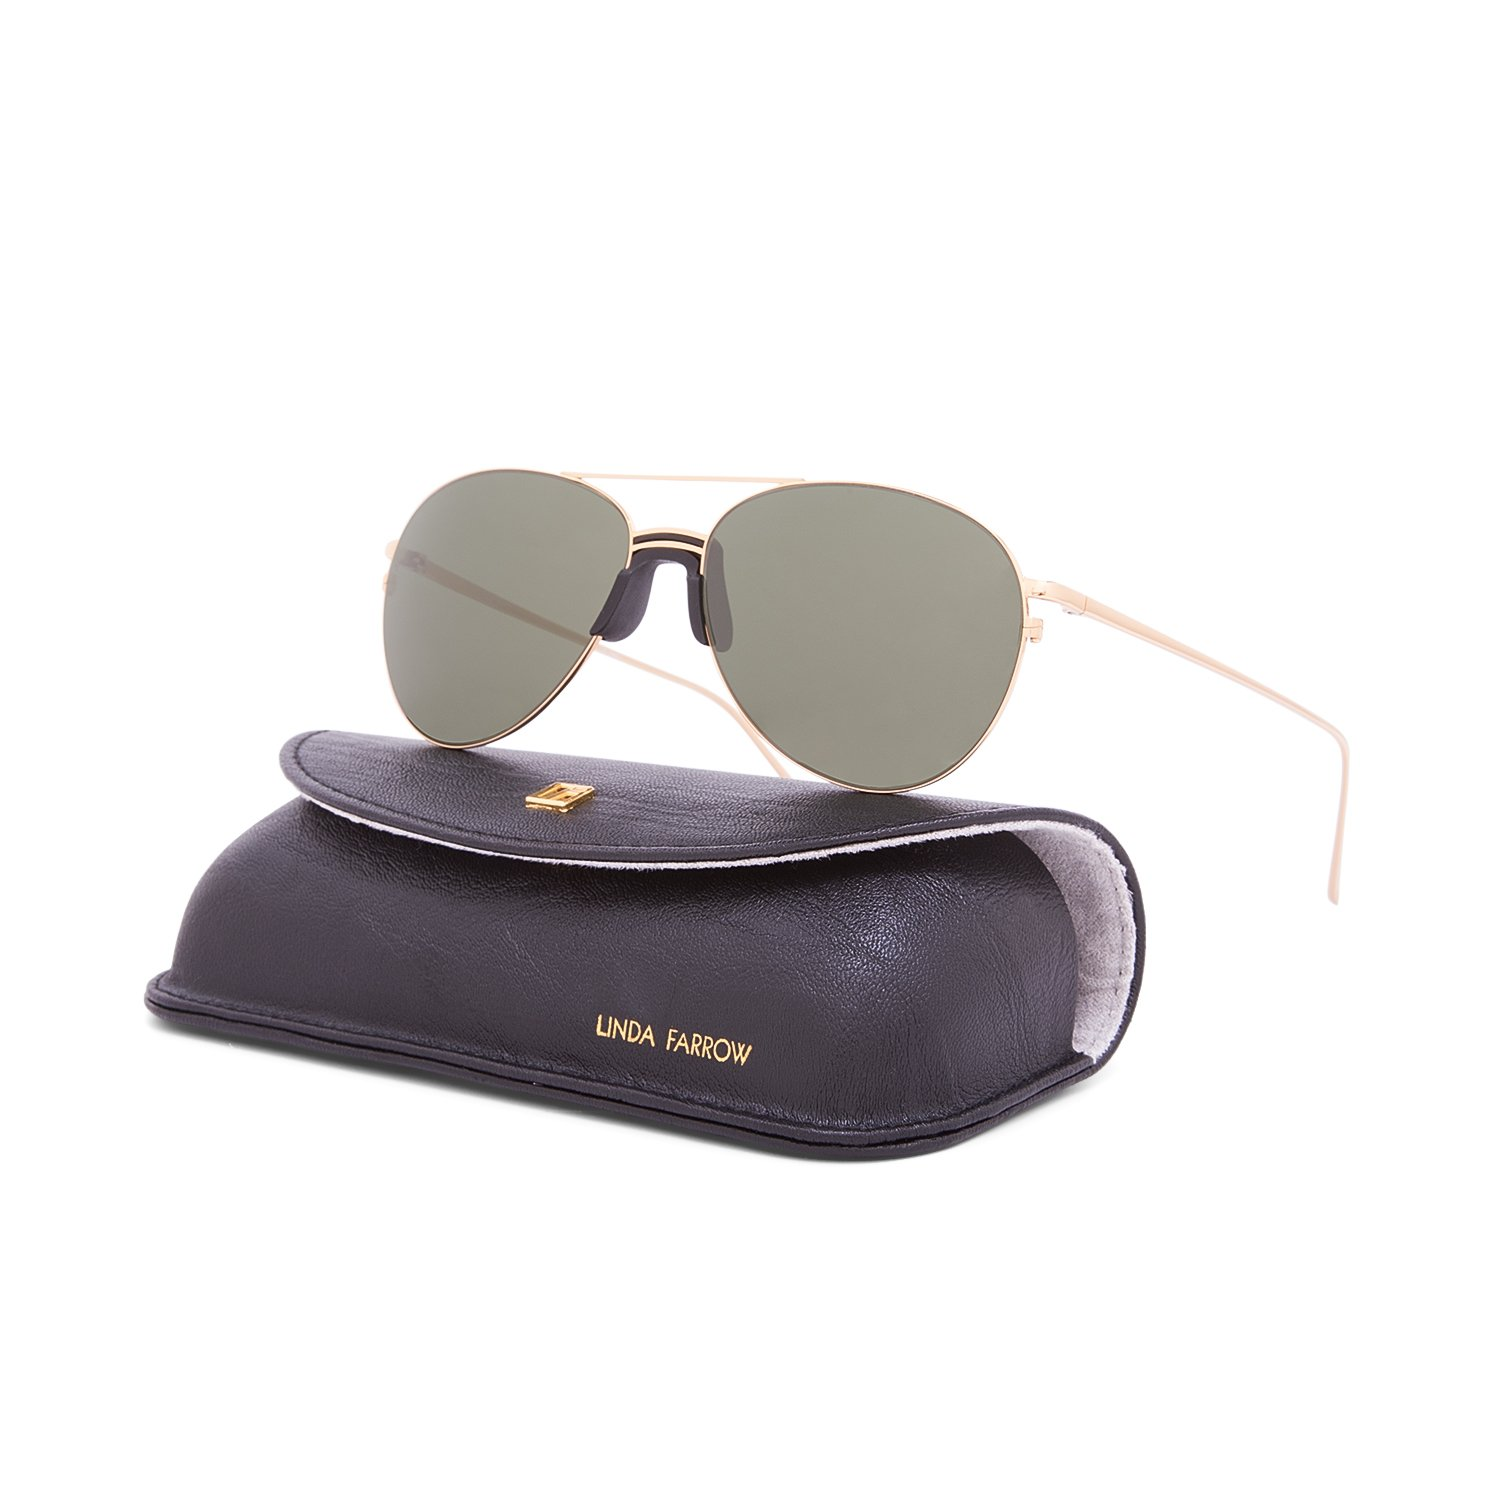 c372ef981519 Linda Farrow Luxe LFL 344 Sunglasses C1 Yellow Gold Frame   Green Lens  Linda  Farrow  Amazon.ca  Clothing   Accessories